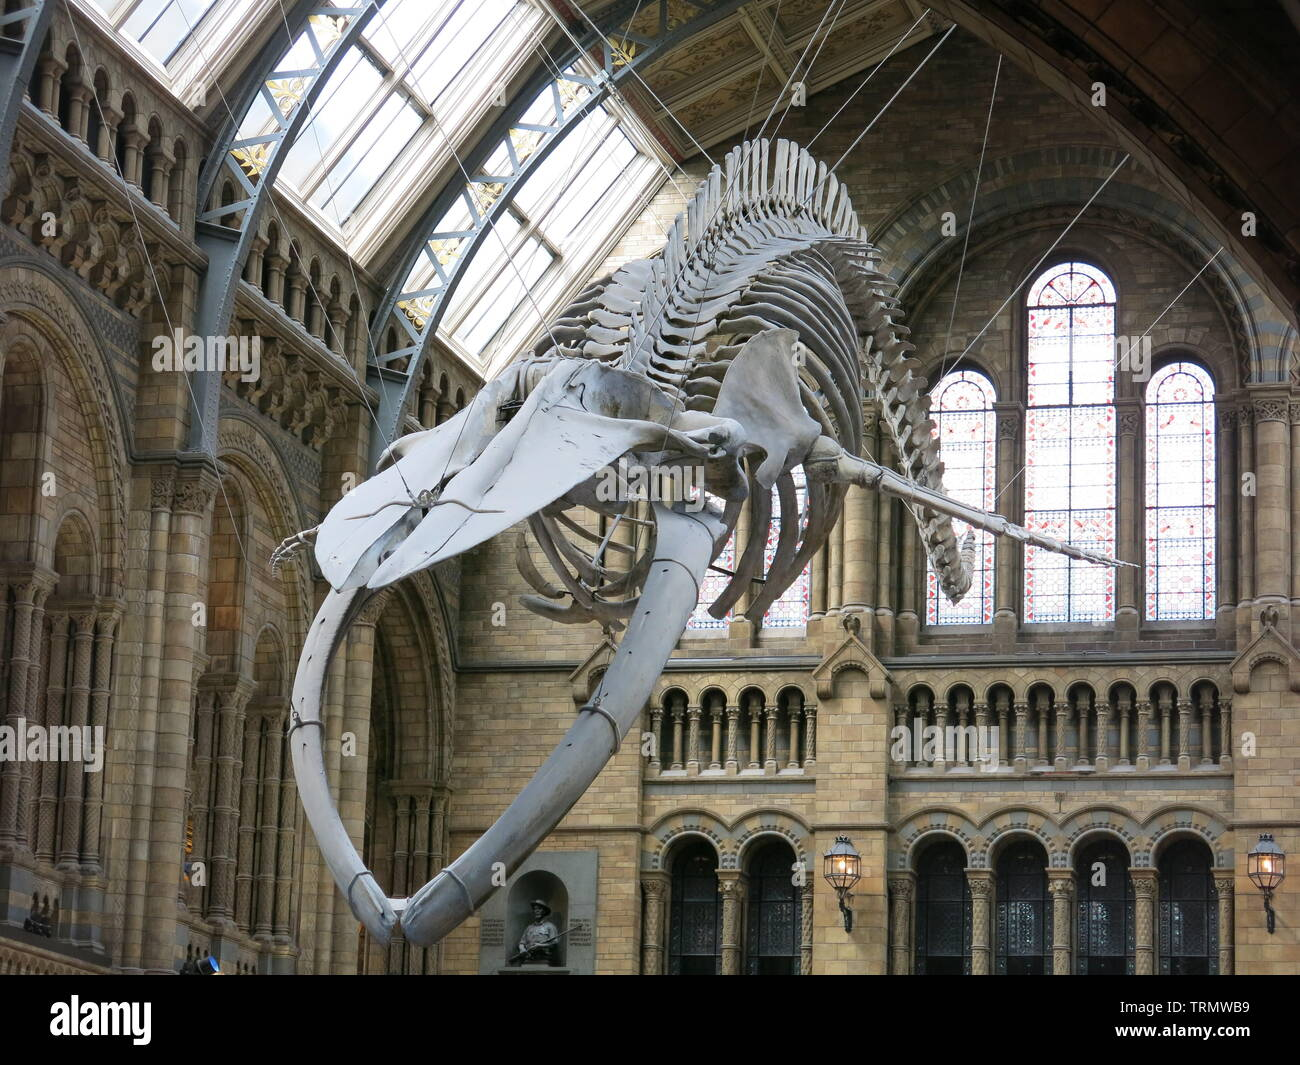 The skeleton of a blue whale suspended from the ceiling in the entrance hall is one of the big attractions for visitors to the Natural History Museum - Stock Image